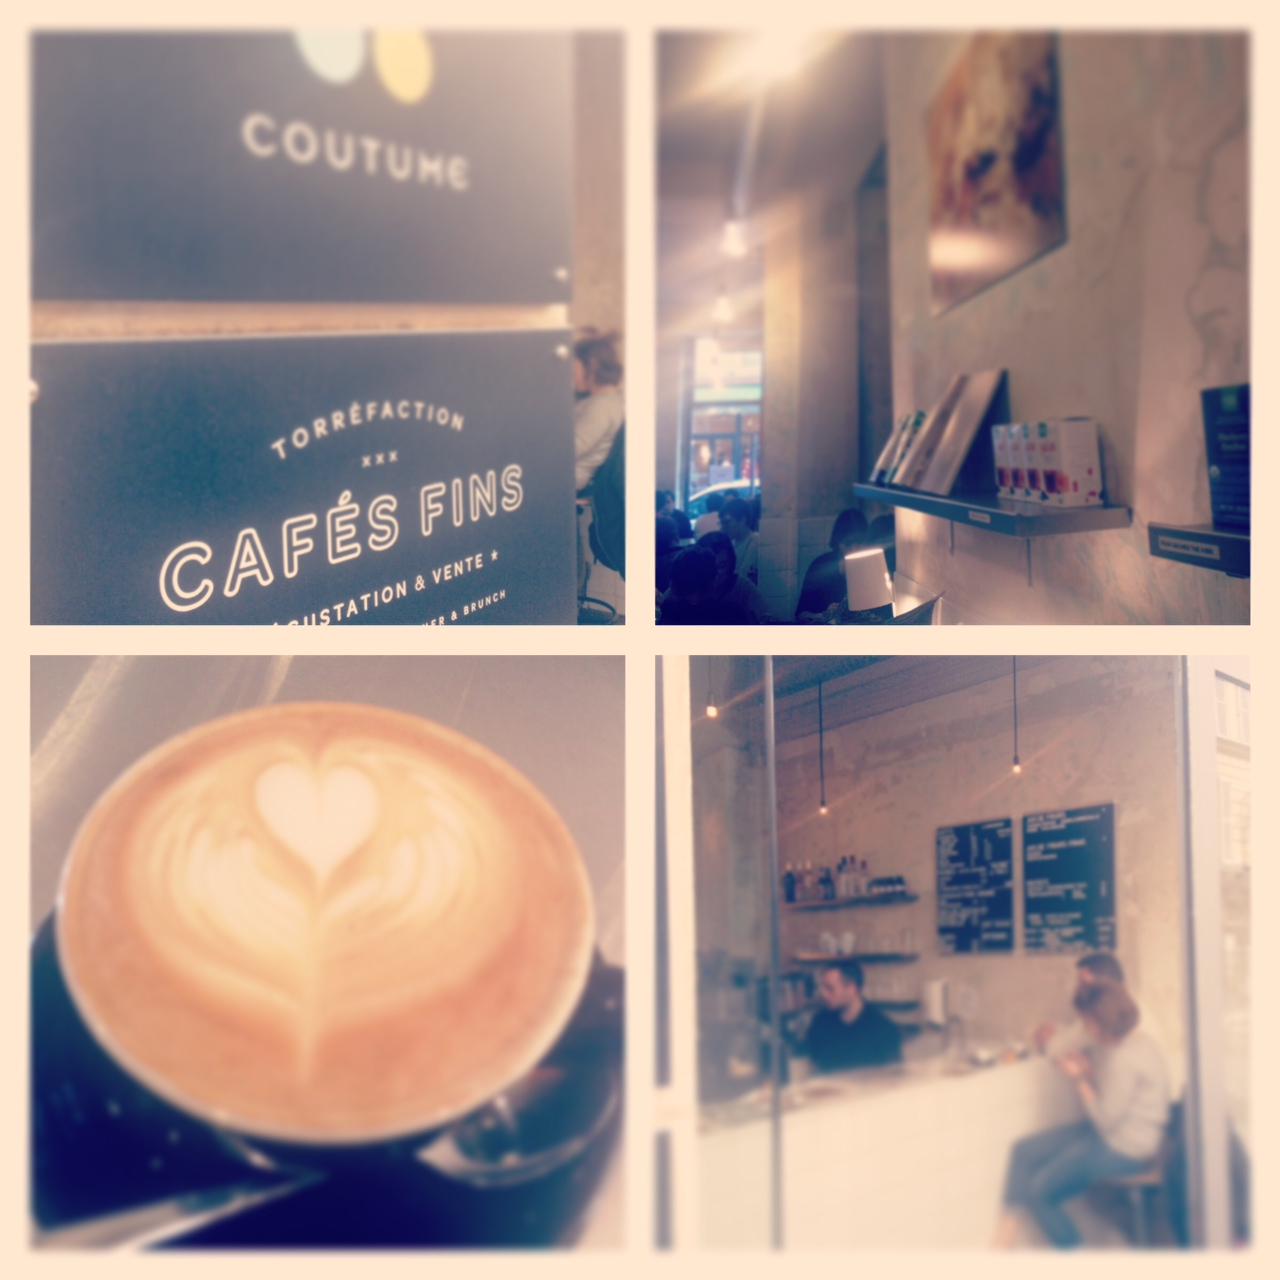 collage coutume cafe